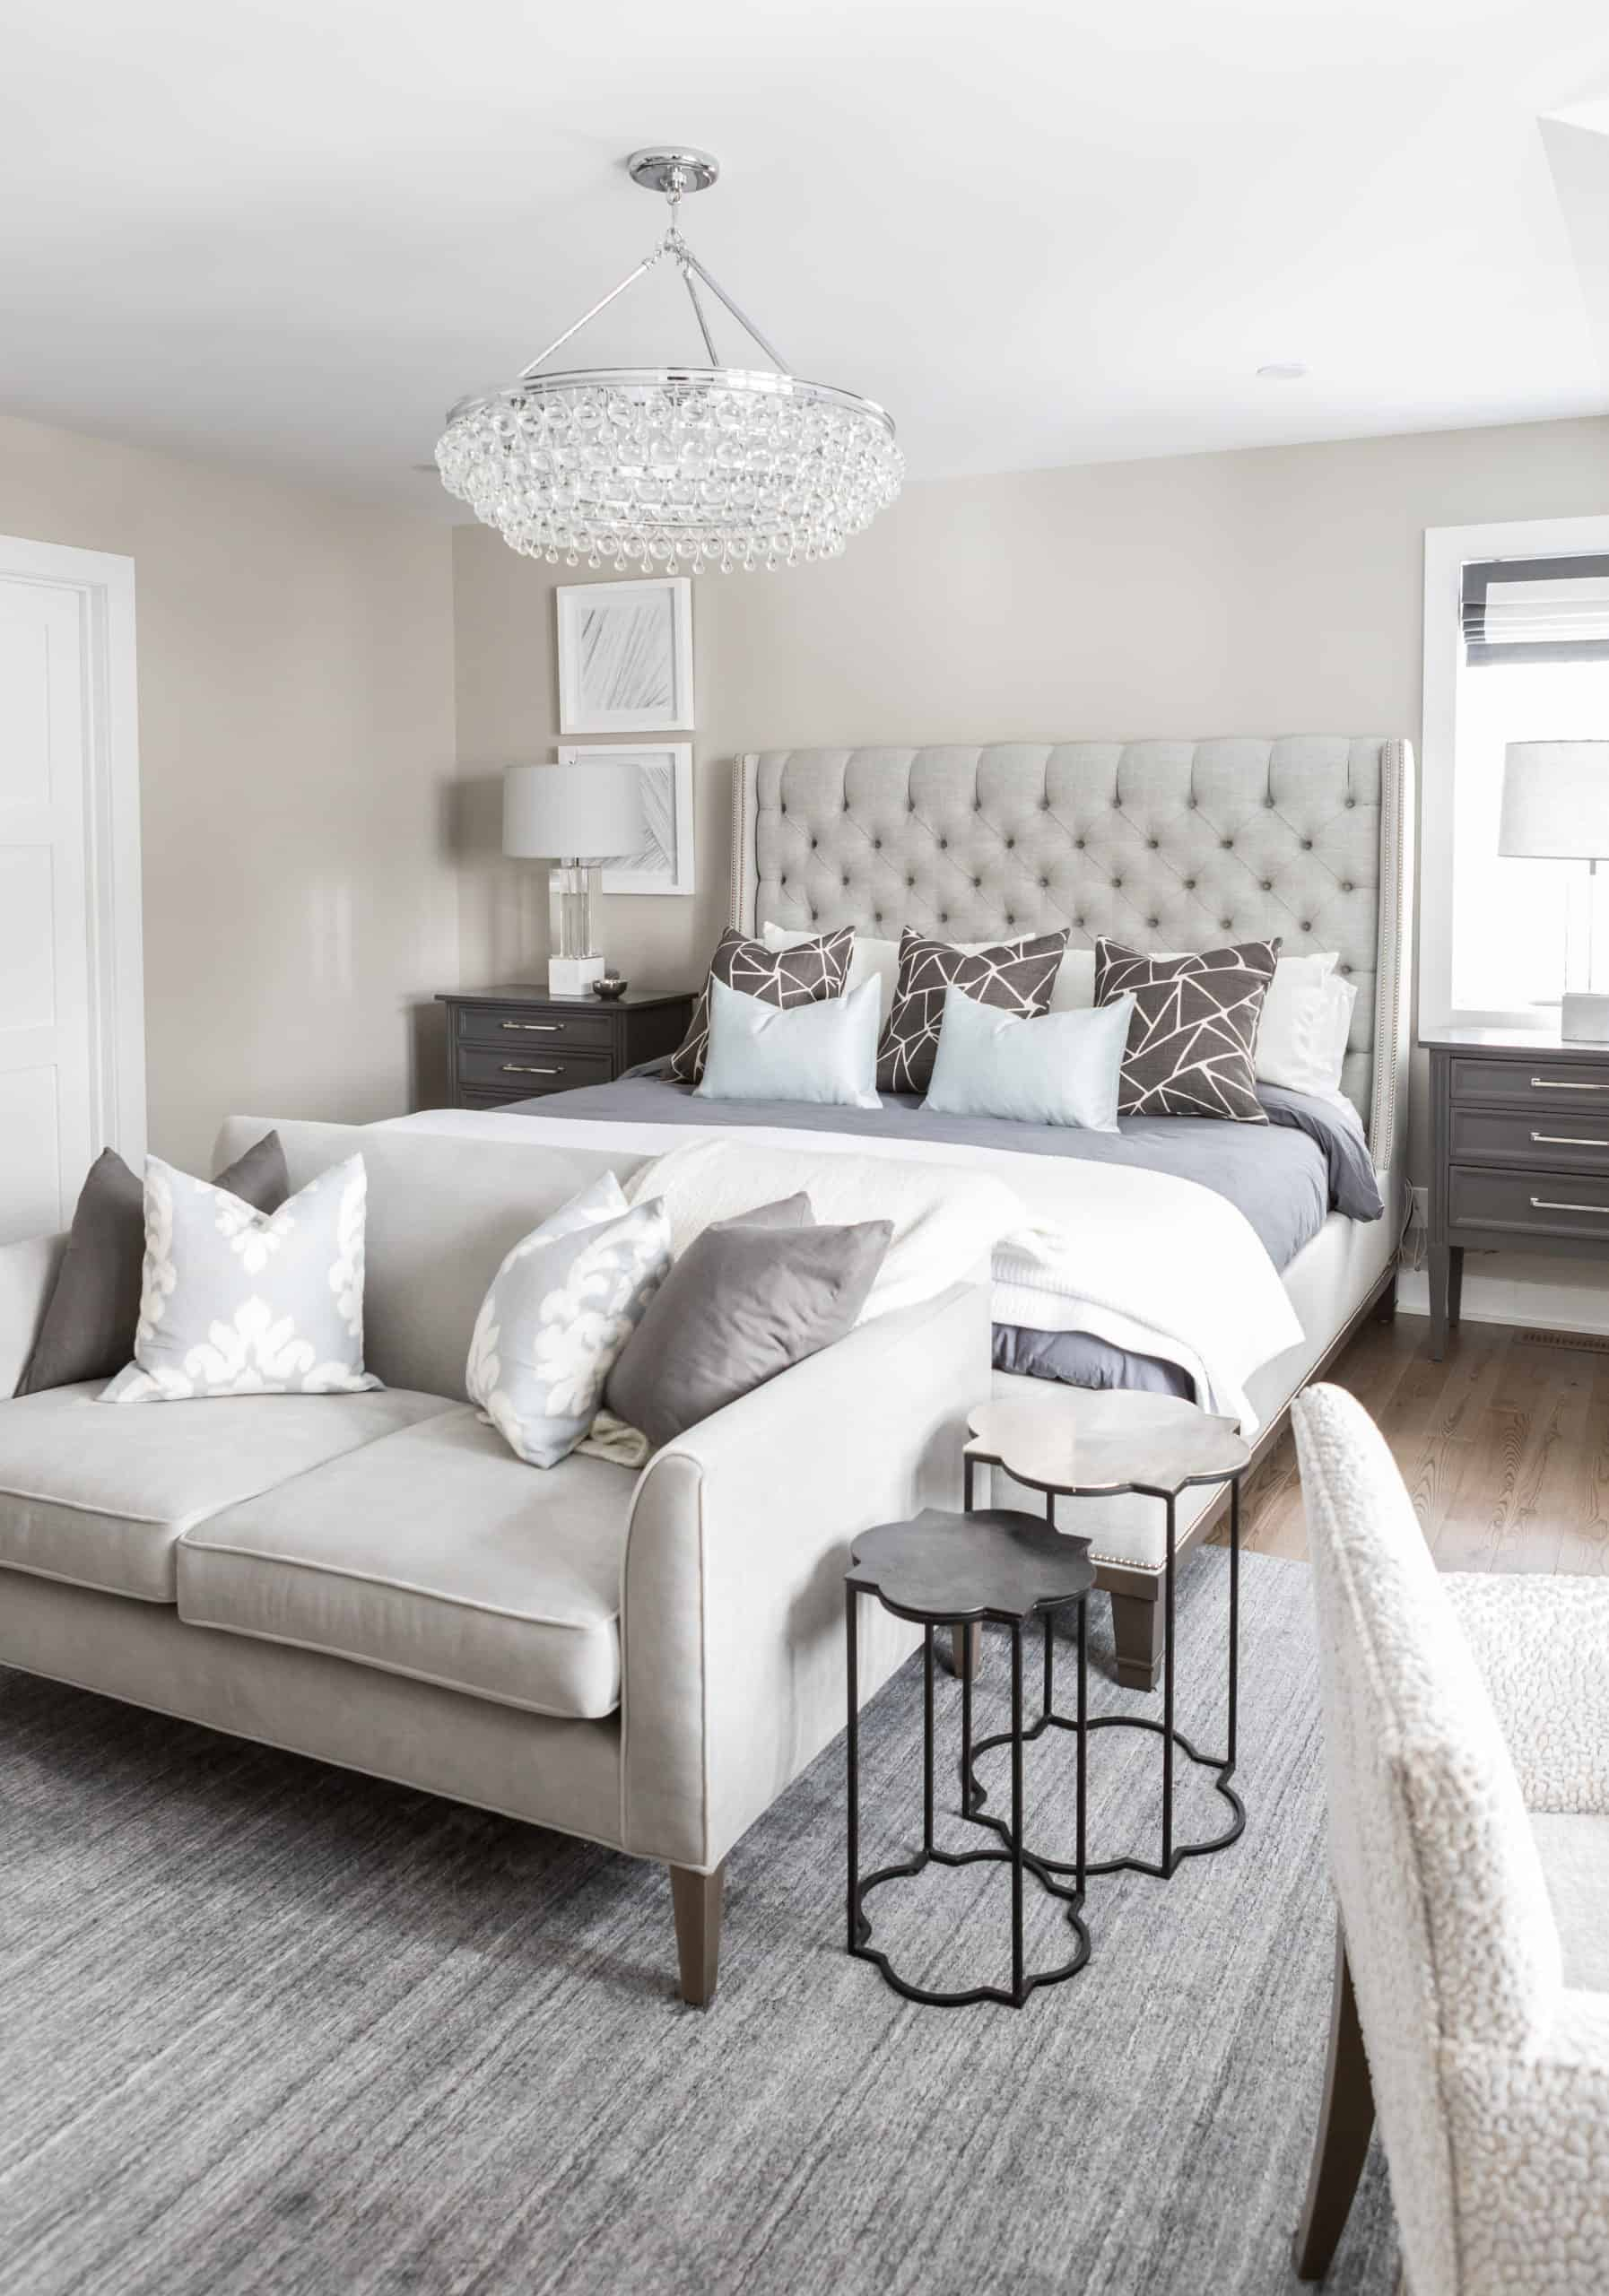 Fancy chandelier above a large gray gray bed